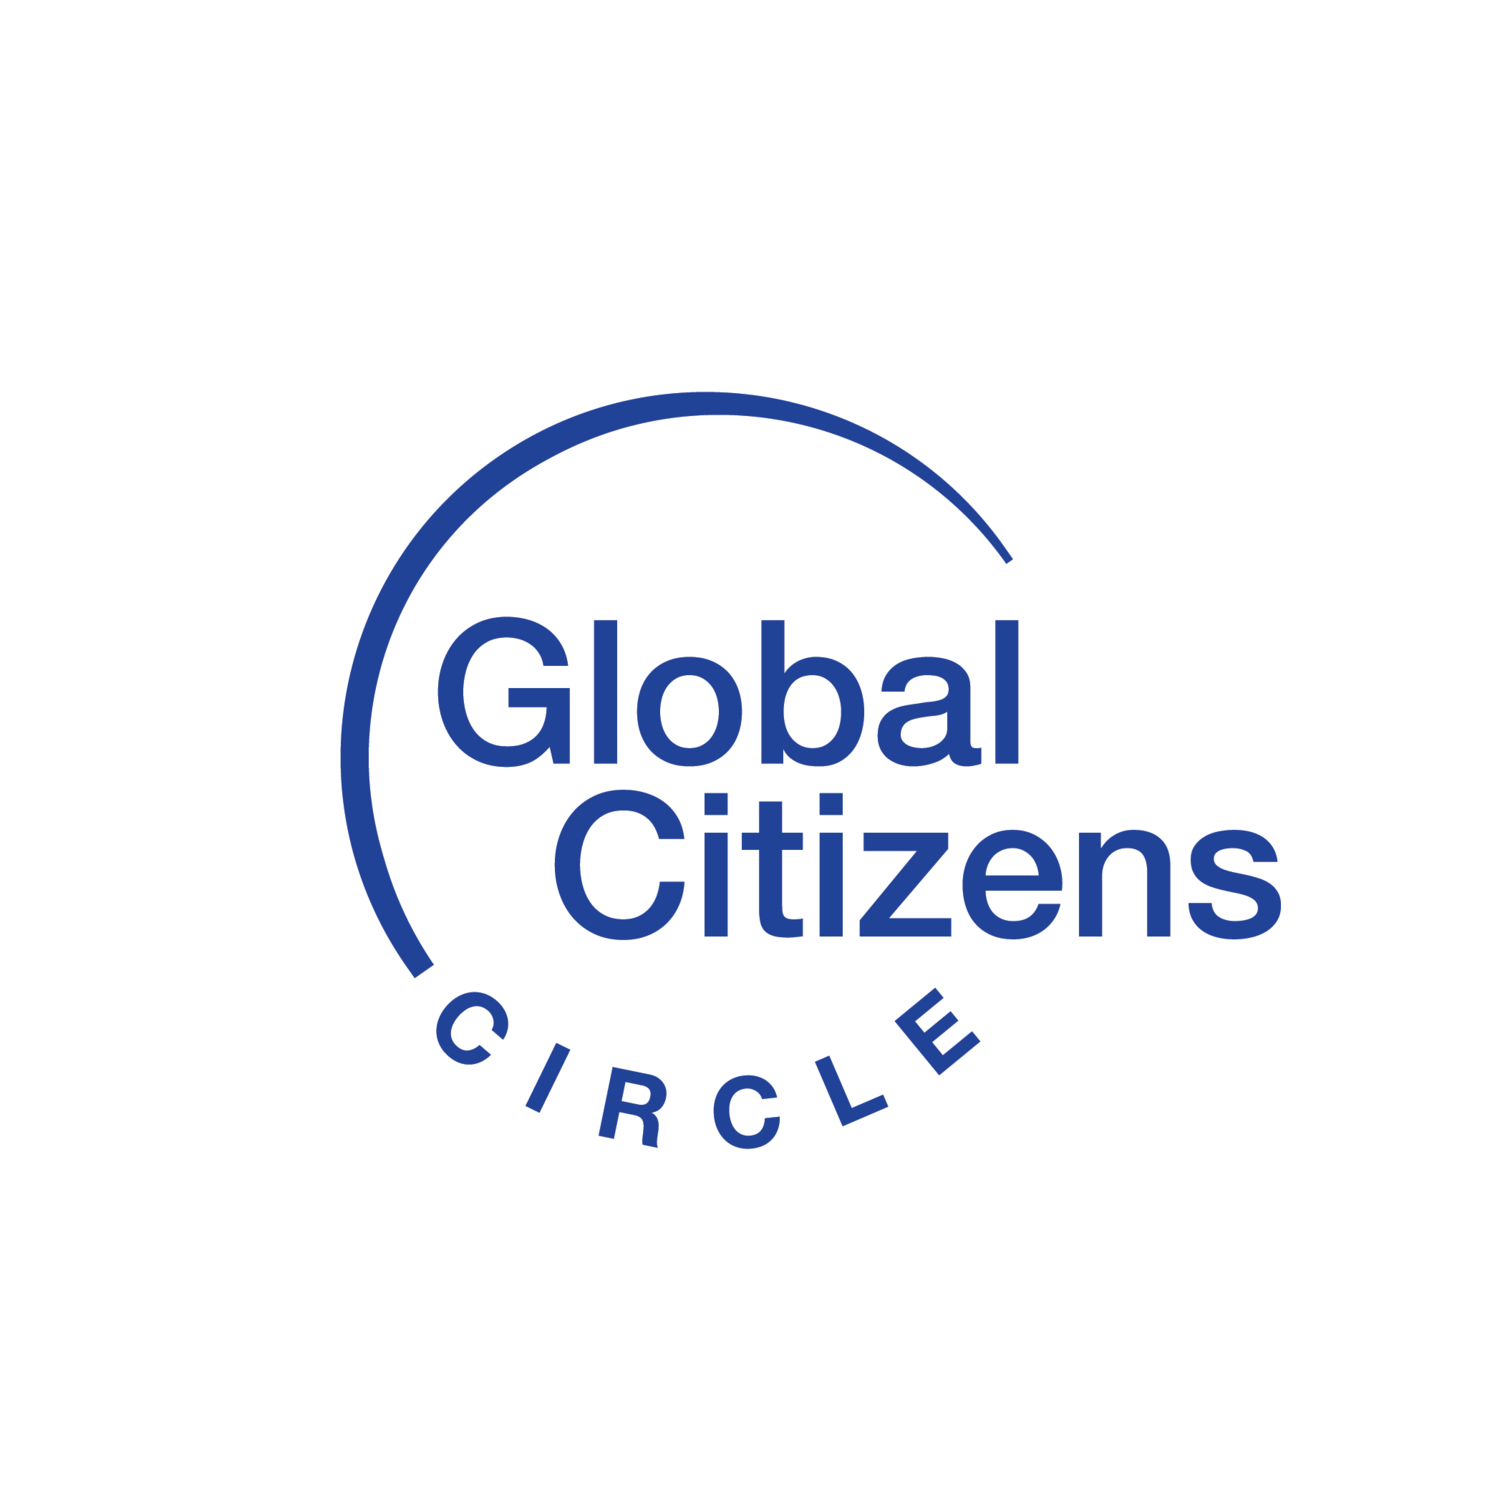 Global Citizens Circle